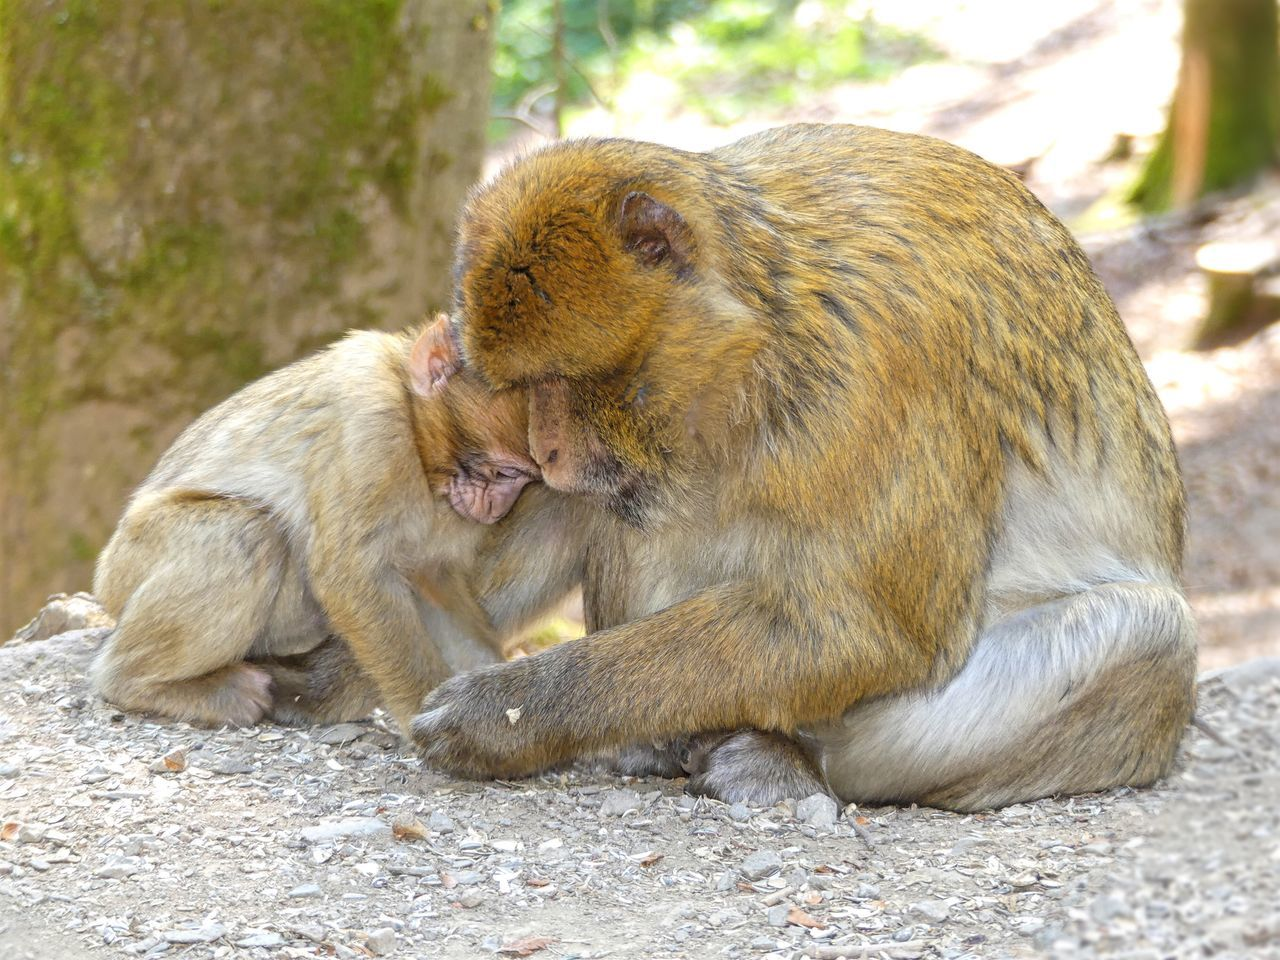 Monkey Love Animal Themes One Animal Animals In The Wild Wildlife Rock - Object Mammal Focus On Foreground Full Length Holding Zoology Zoo Day Outdoors Animal Hair Animal Head  No People Looking Motherlove Fatherlove Father & Son Father And Daughter